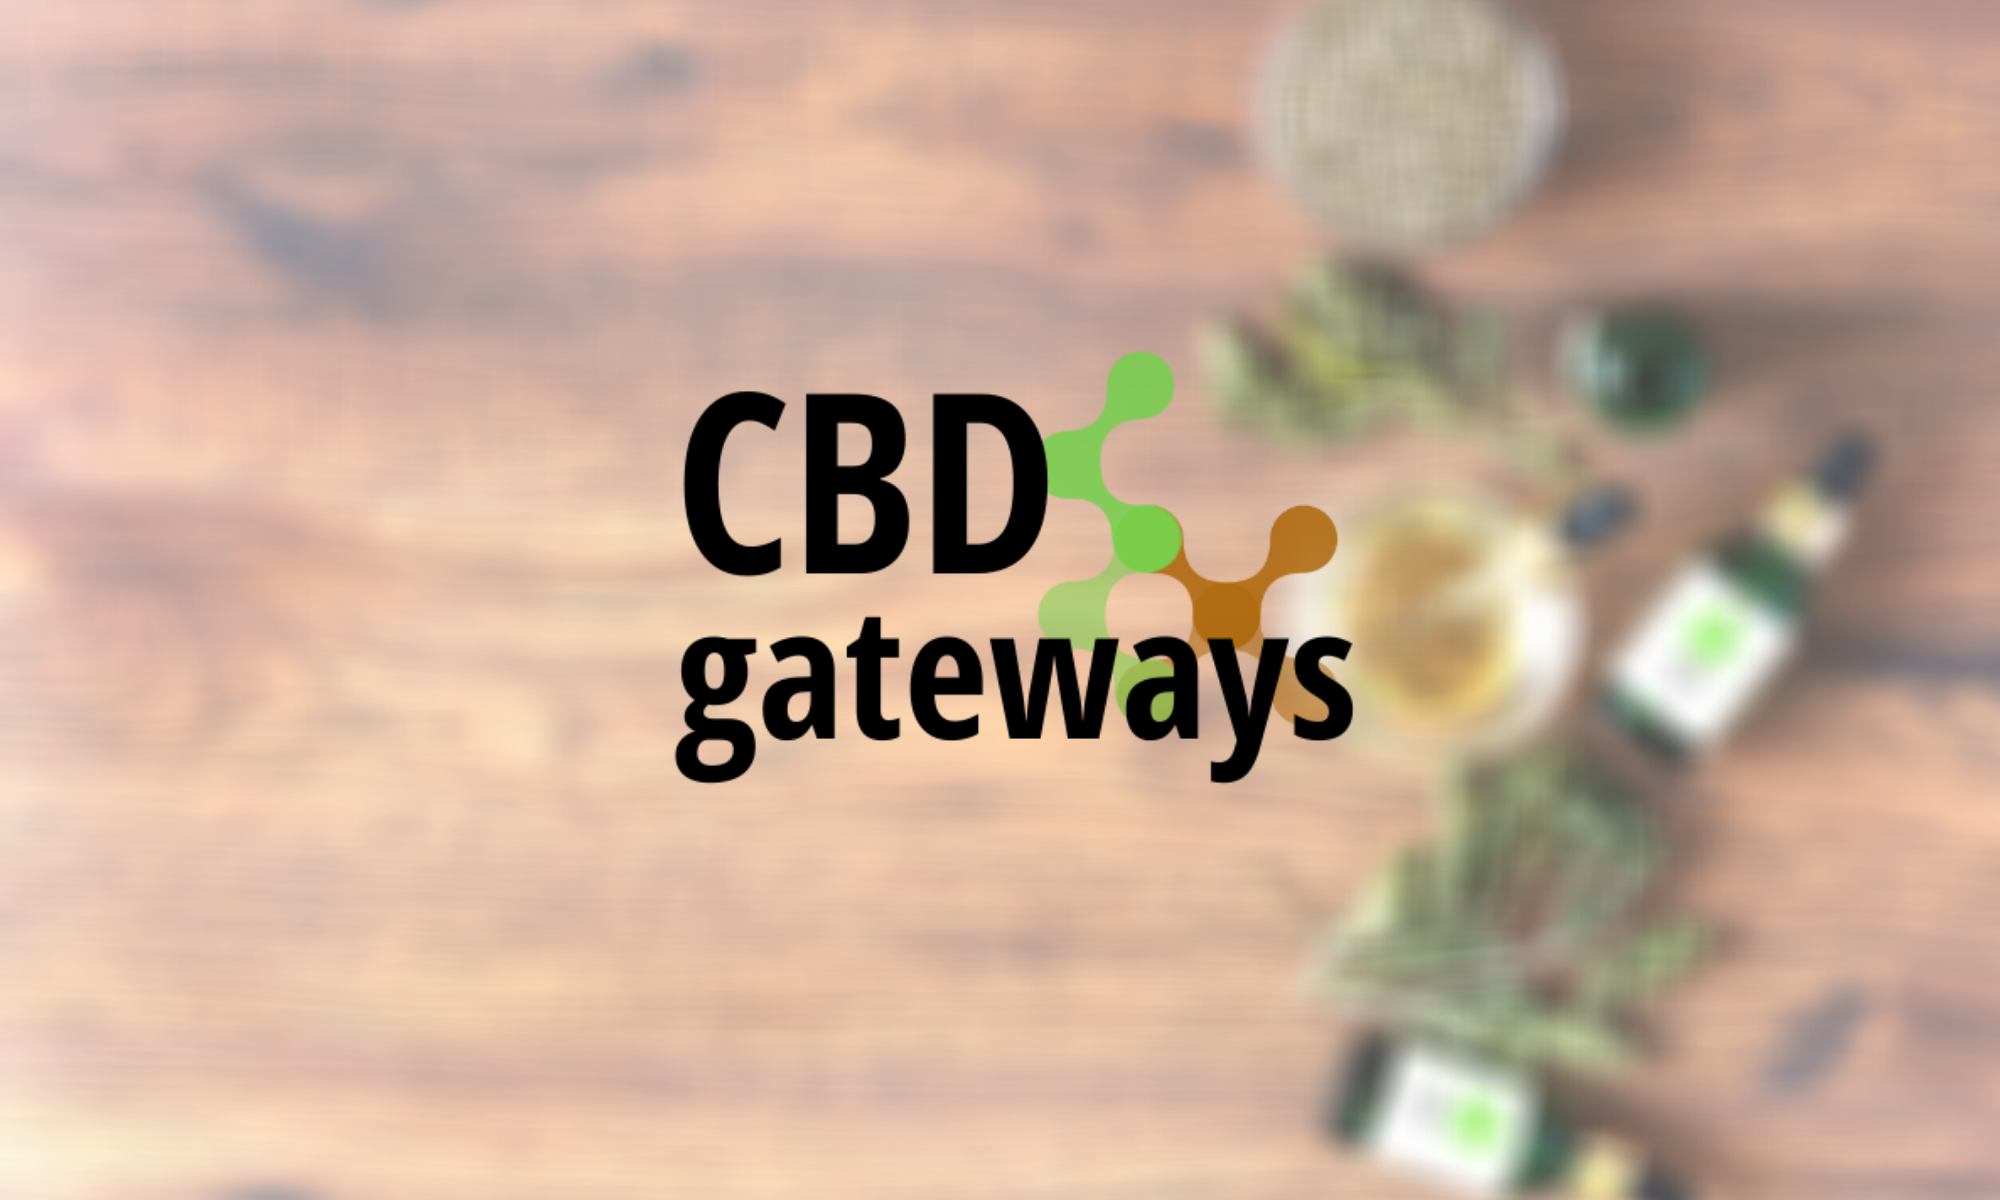 CBD Gateways